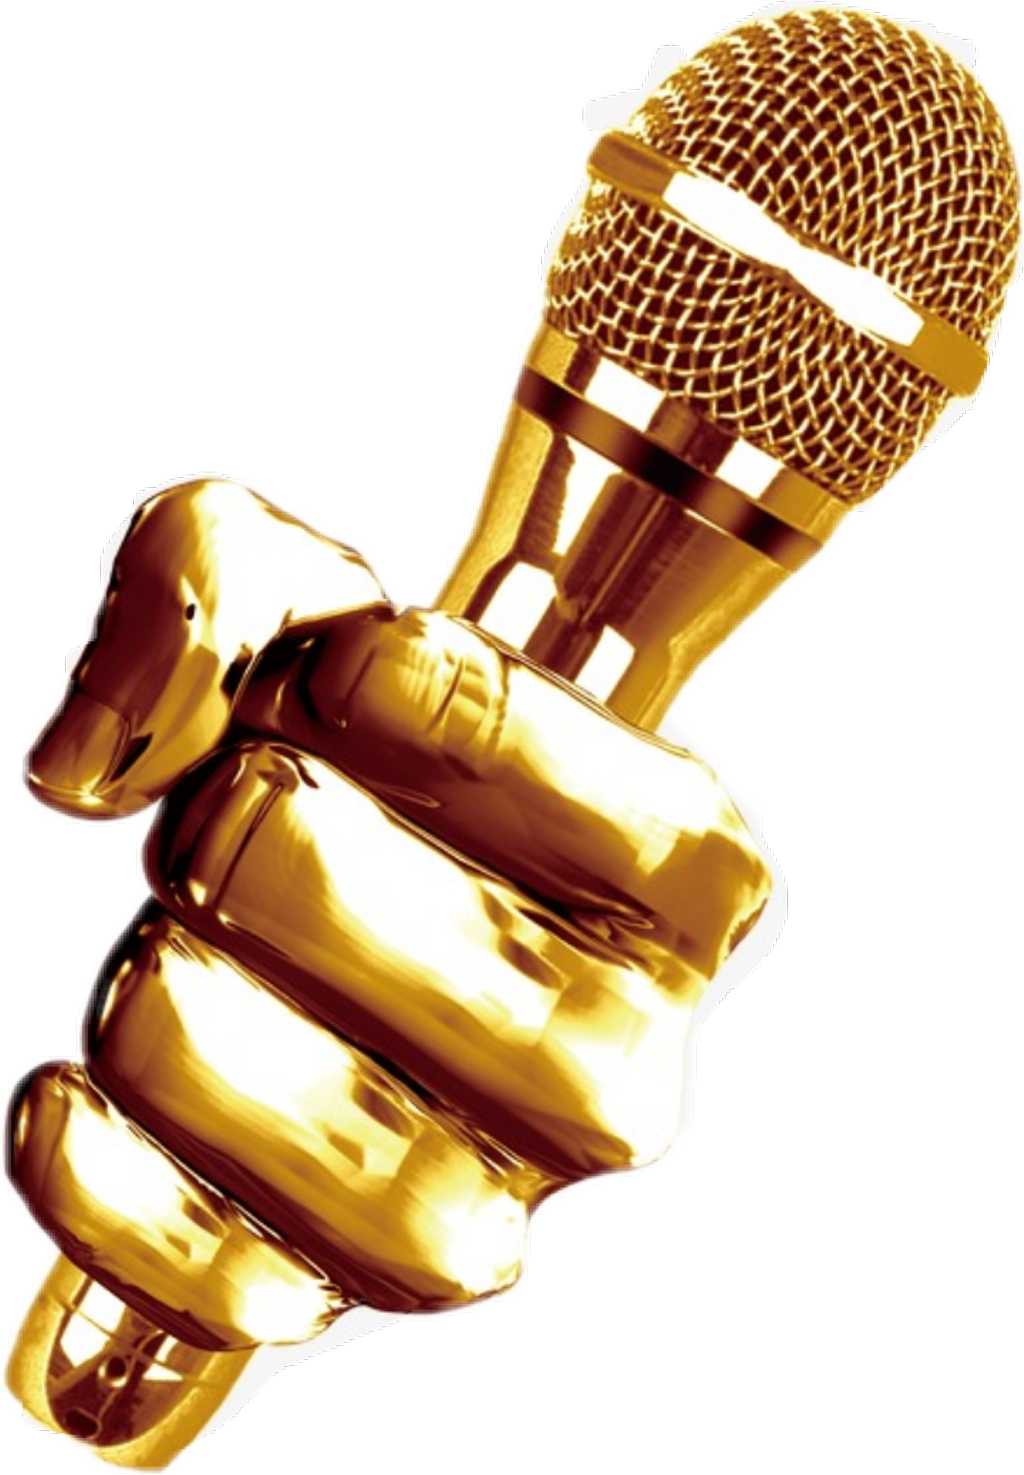 Microphone clipart gold. Golden music onstage dj